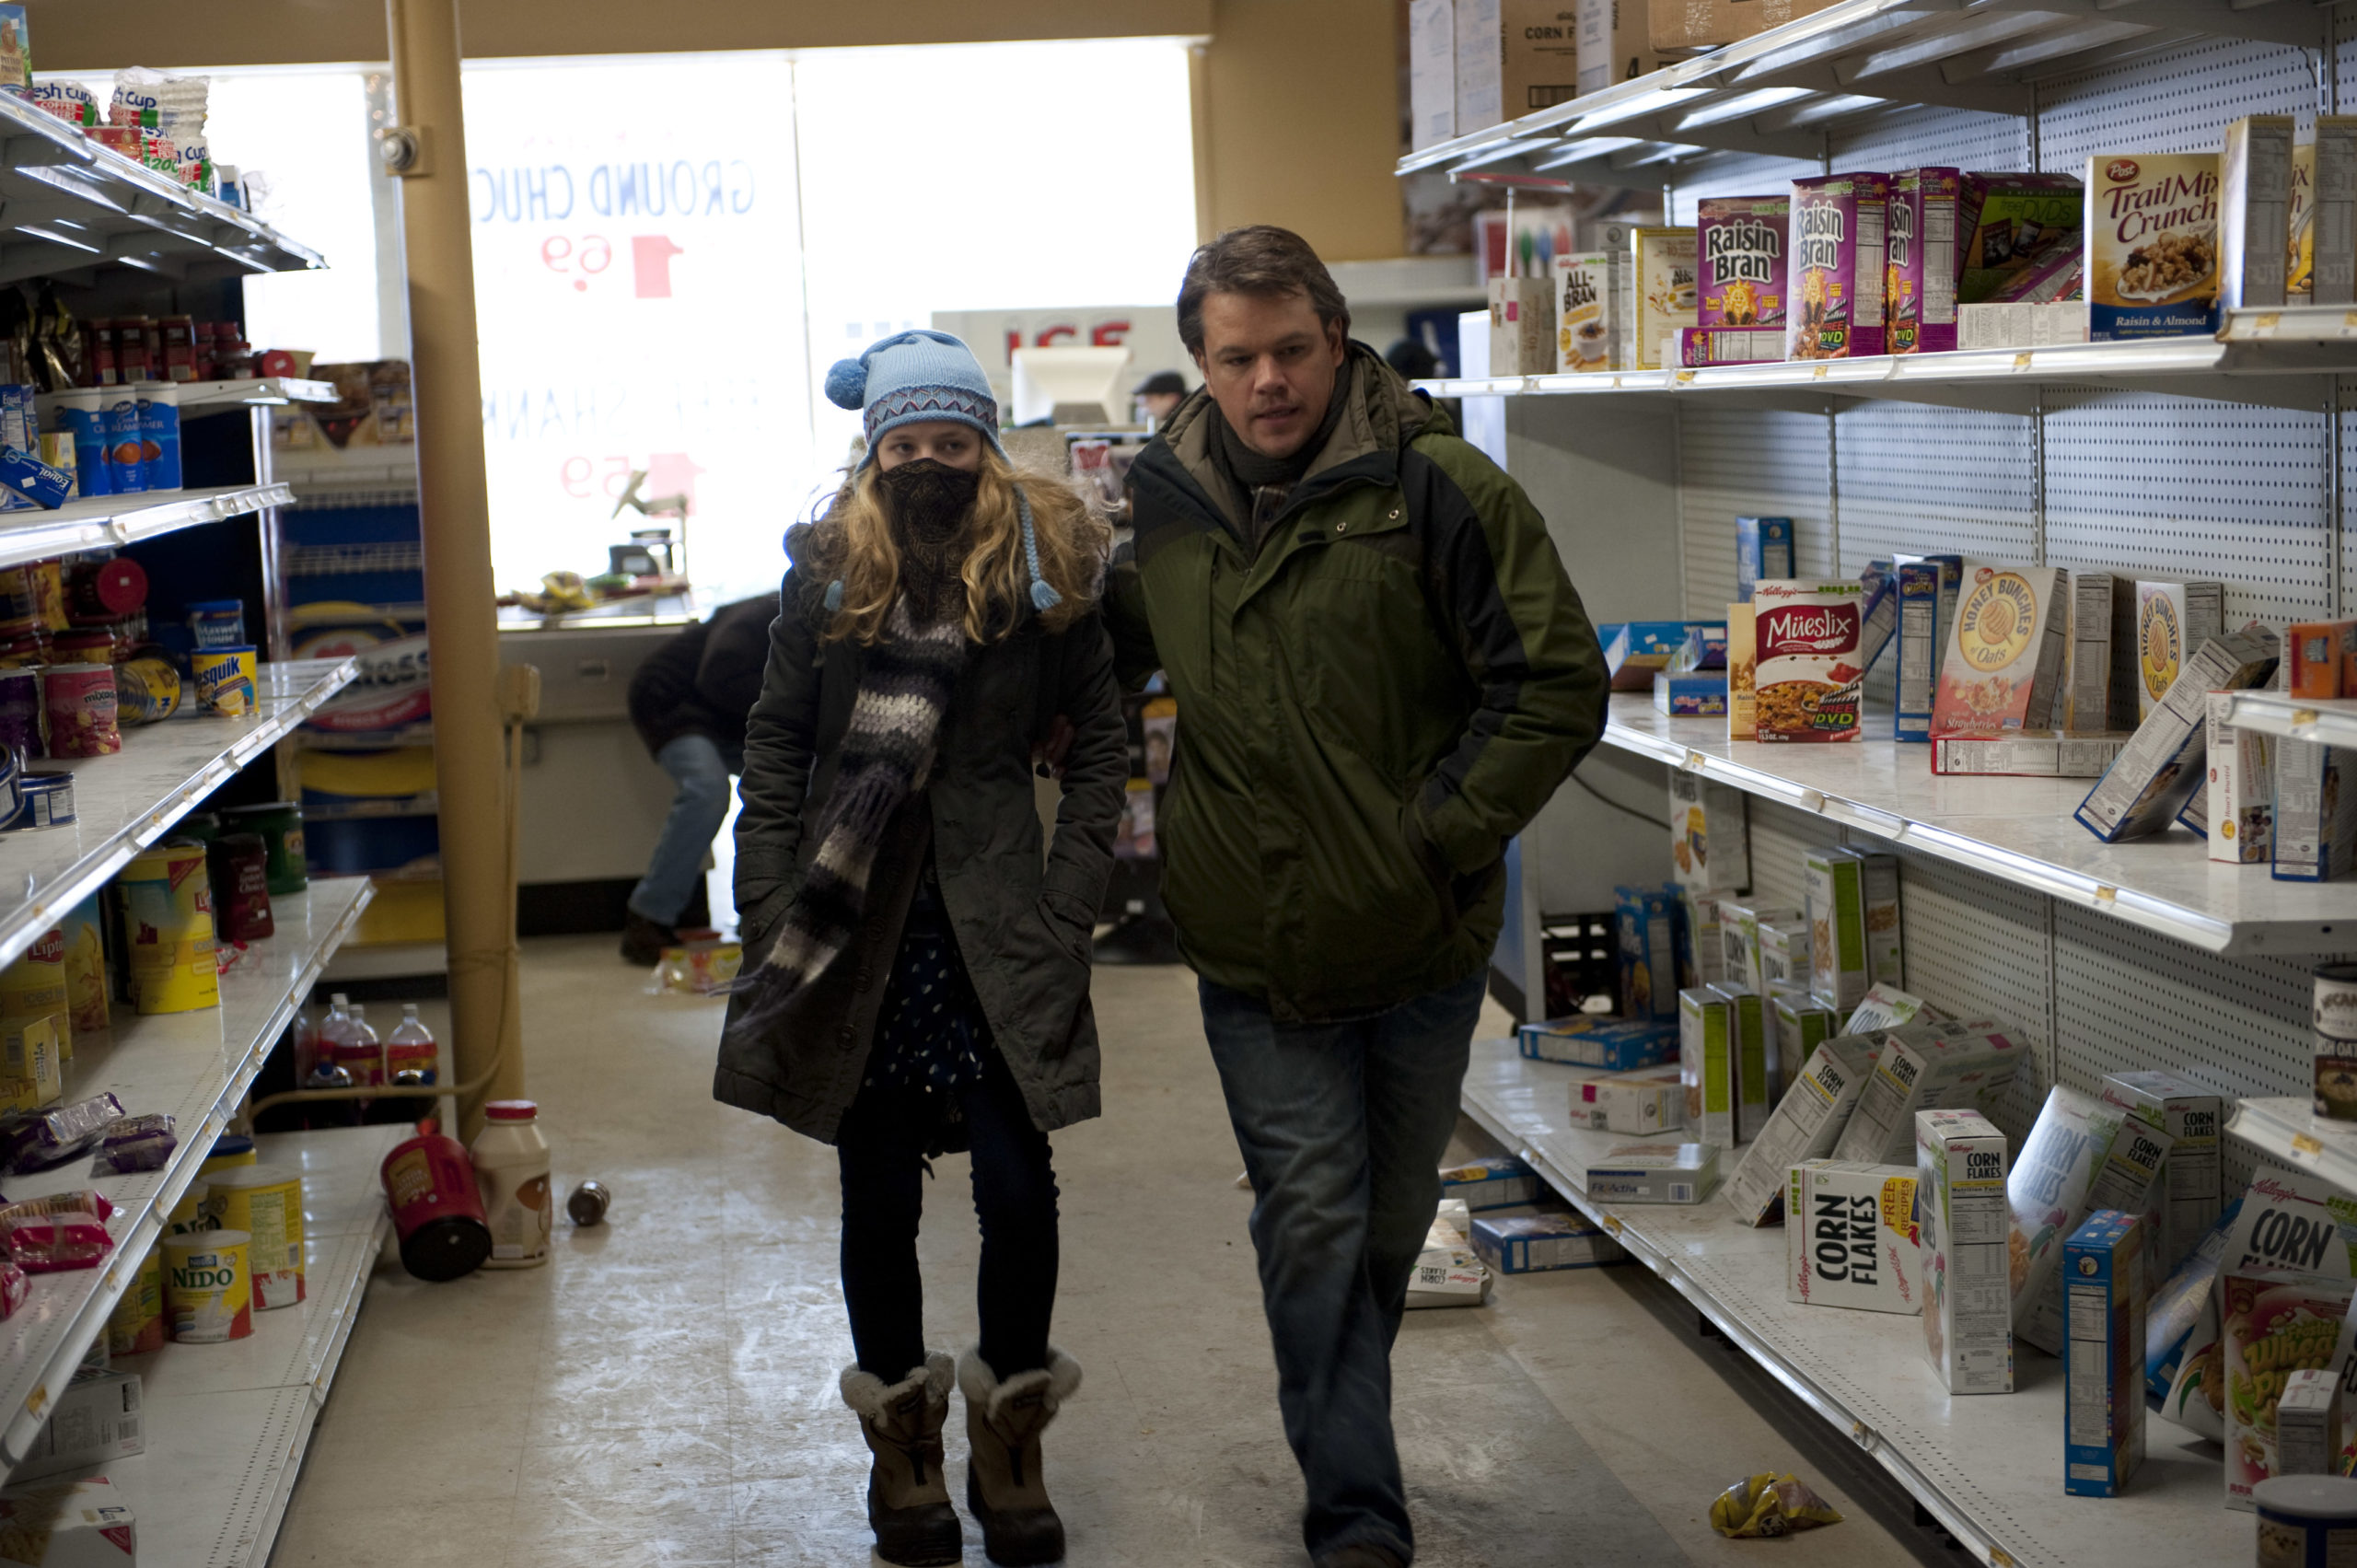 Scene from the movie Contagion; man and woman walking along the isles of a half-empty store